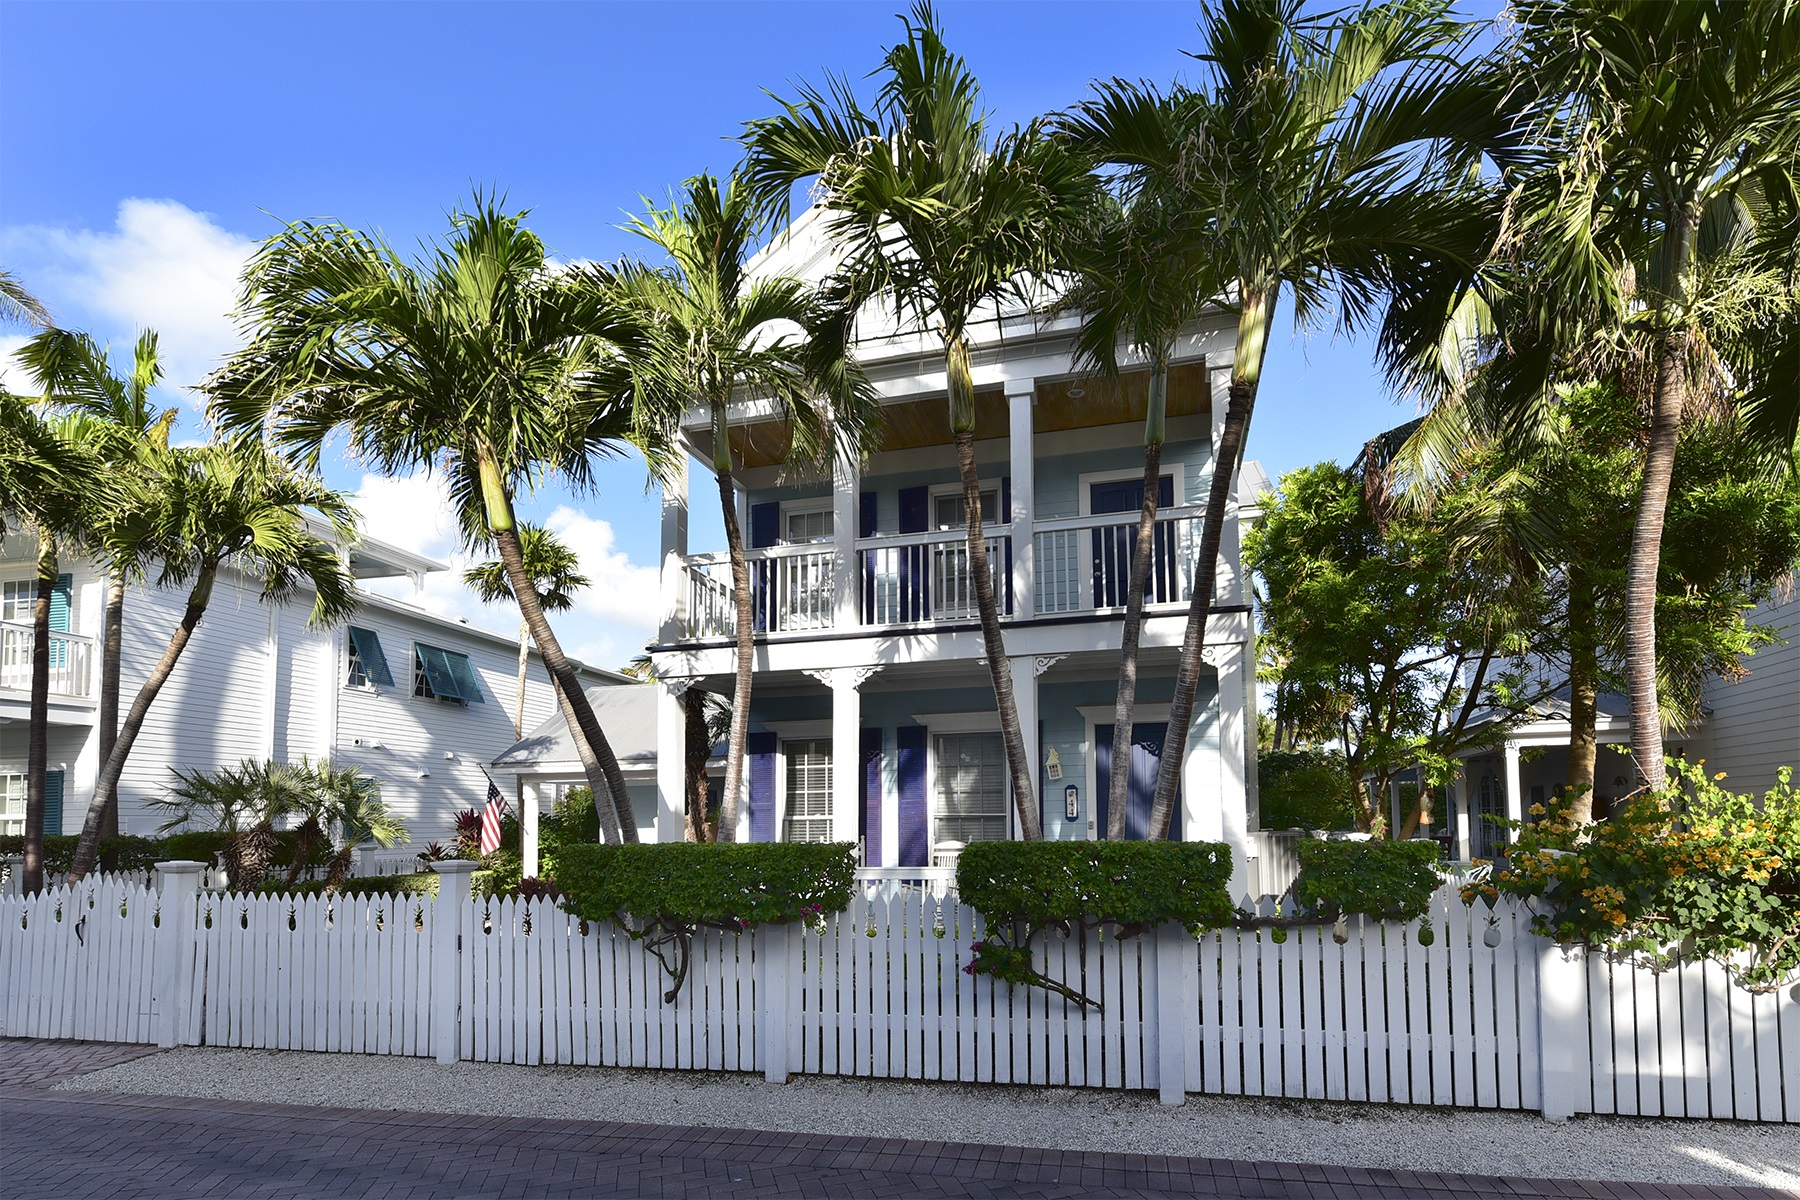 Maison unifamiliale pour l Vente à Sunset Key Home with Ocean Views 44 Sunset Key Drive, Key West, Florida, 33040 États-Unis